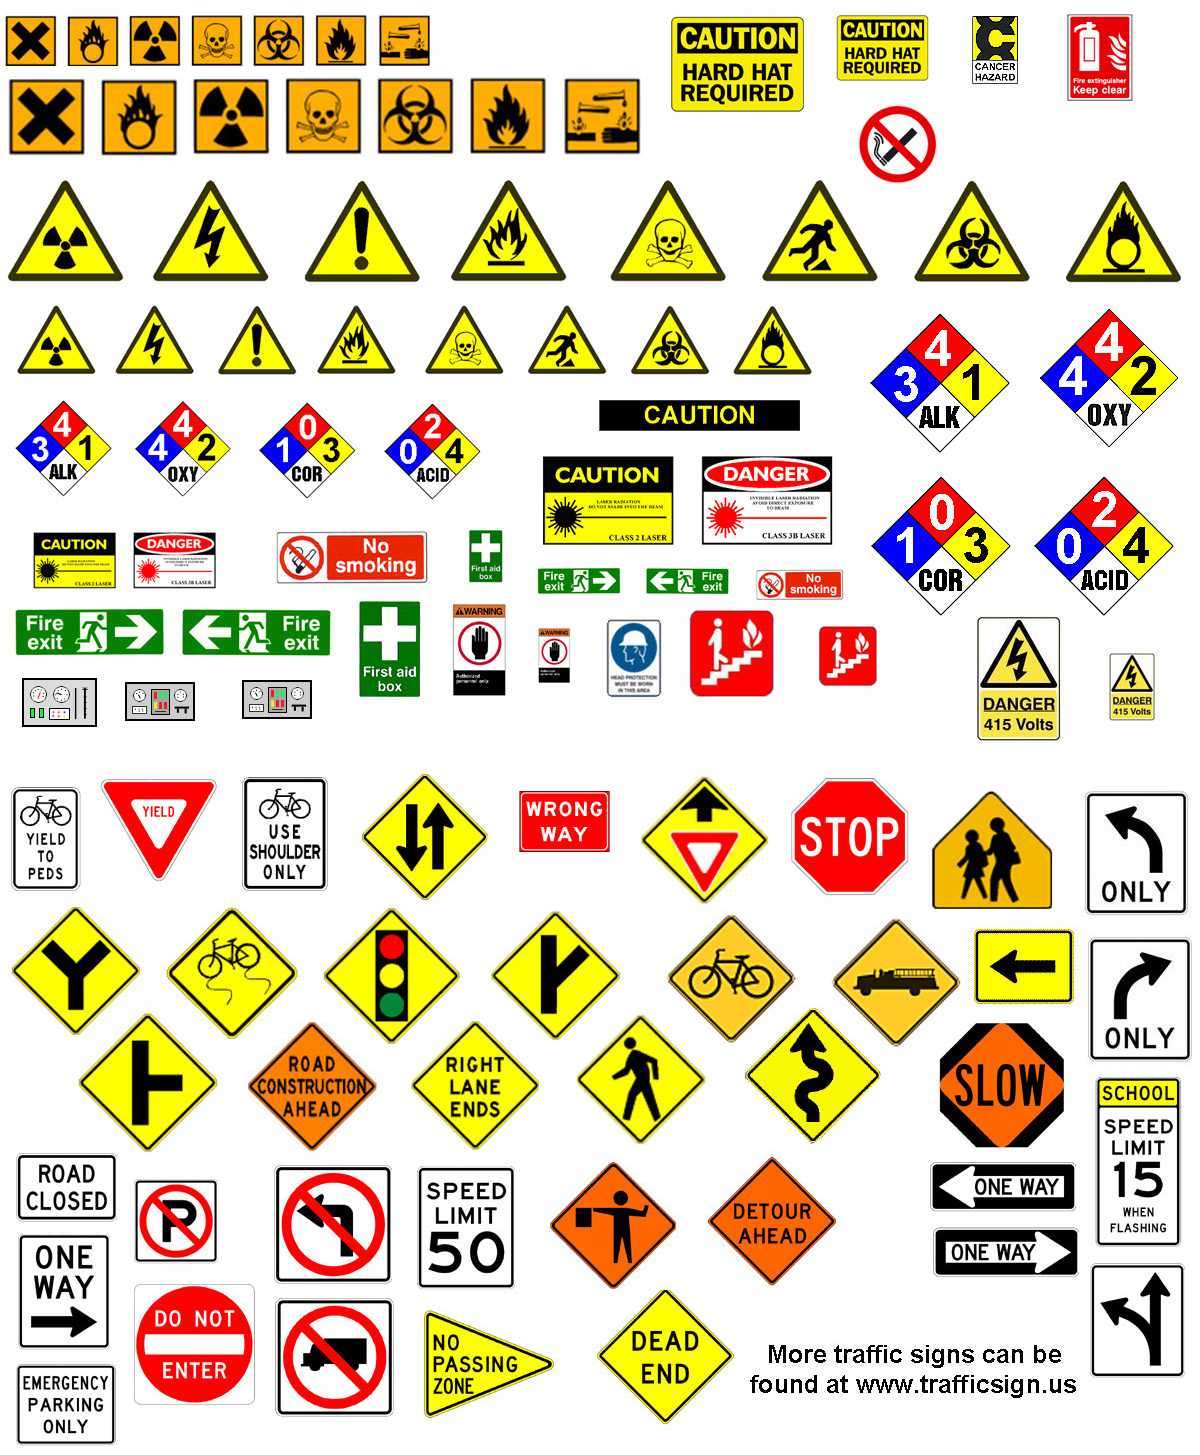 Personalized official traffic signs misc pinterest school personalized official traffic signs misc pinterest school and activities biocorpaavc Choice Image